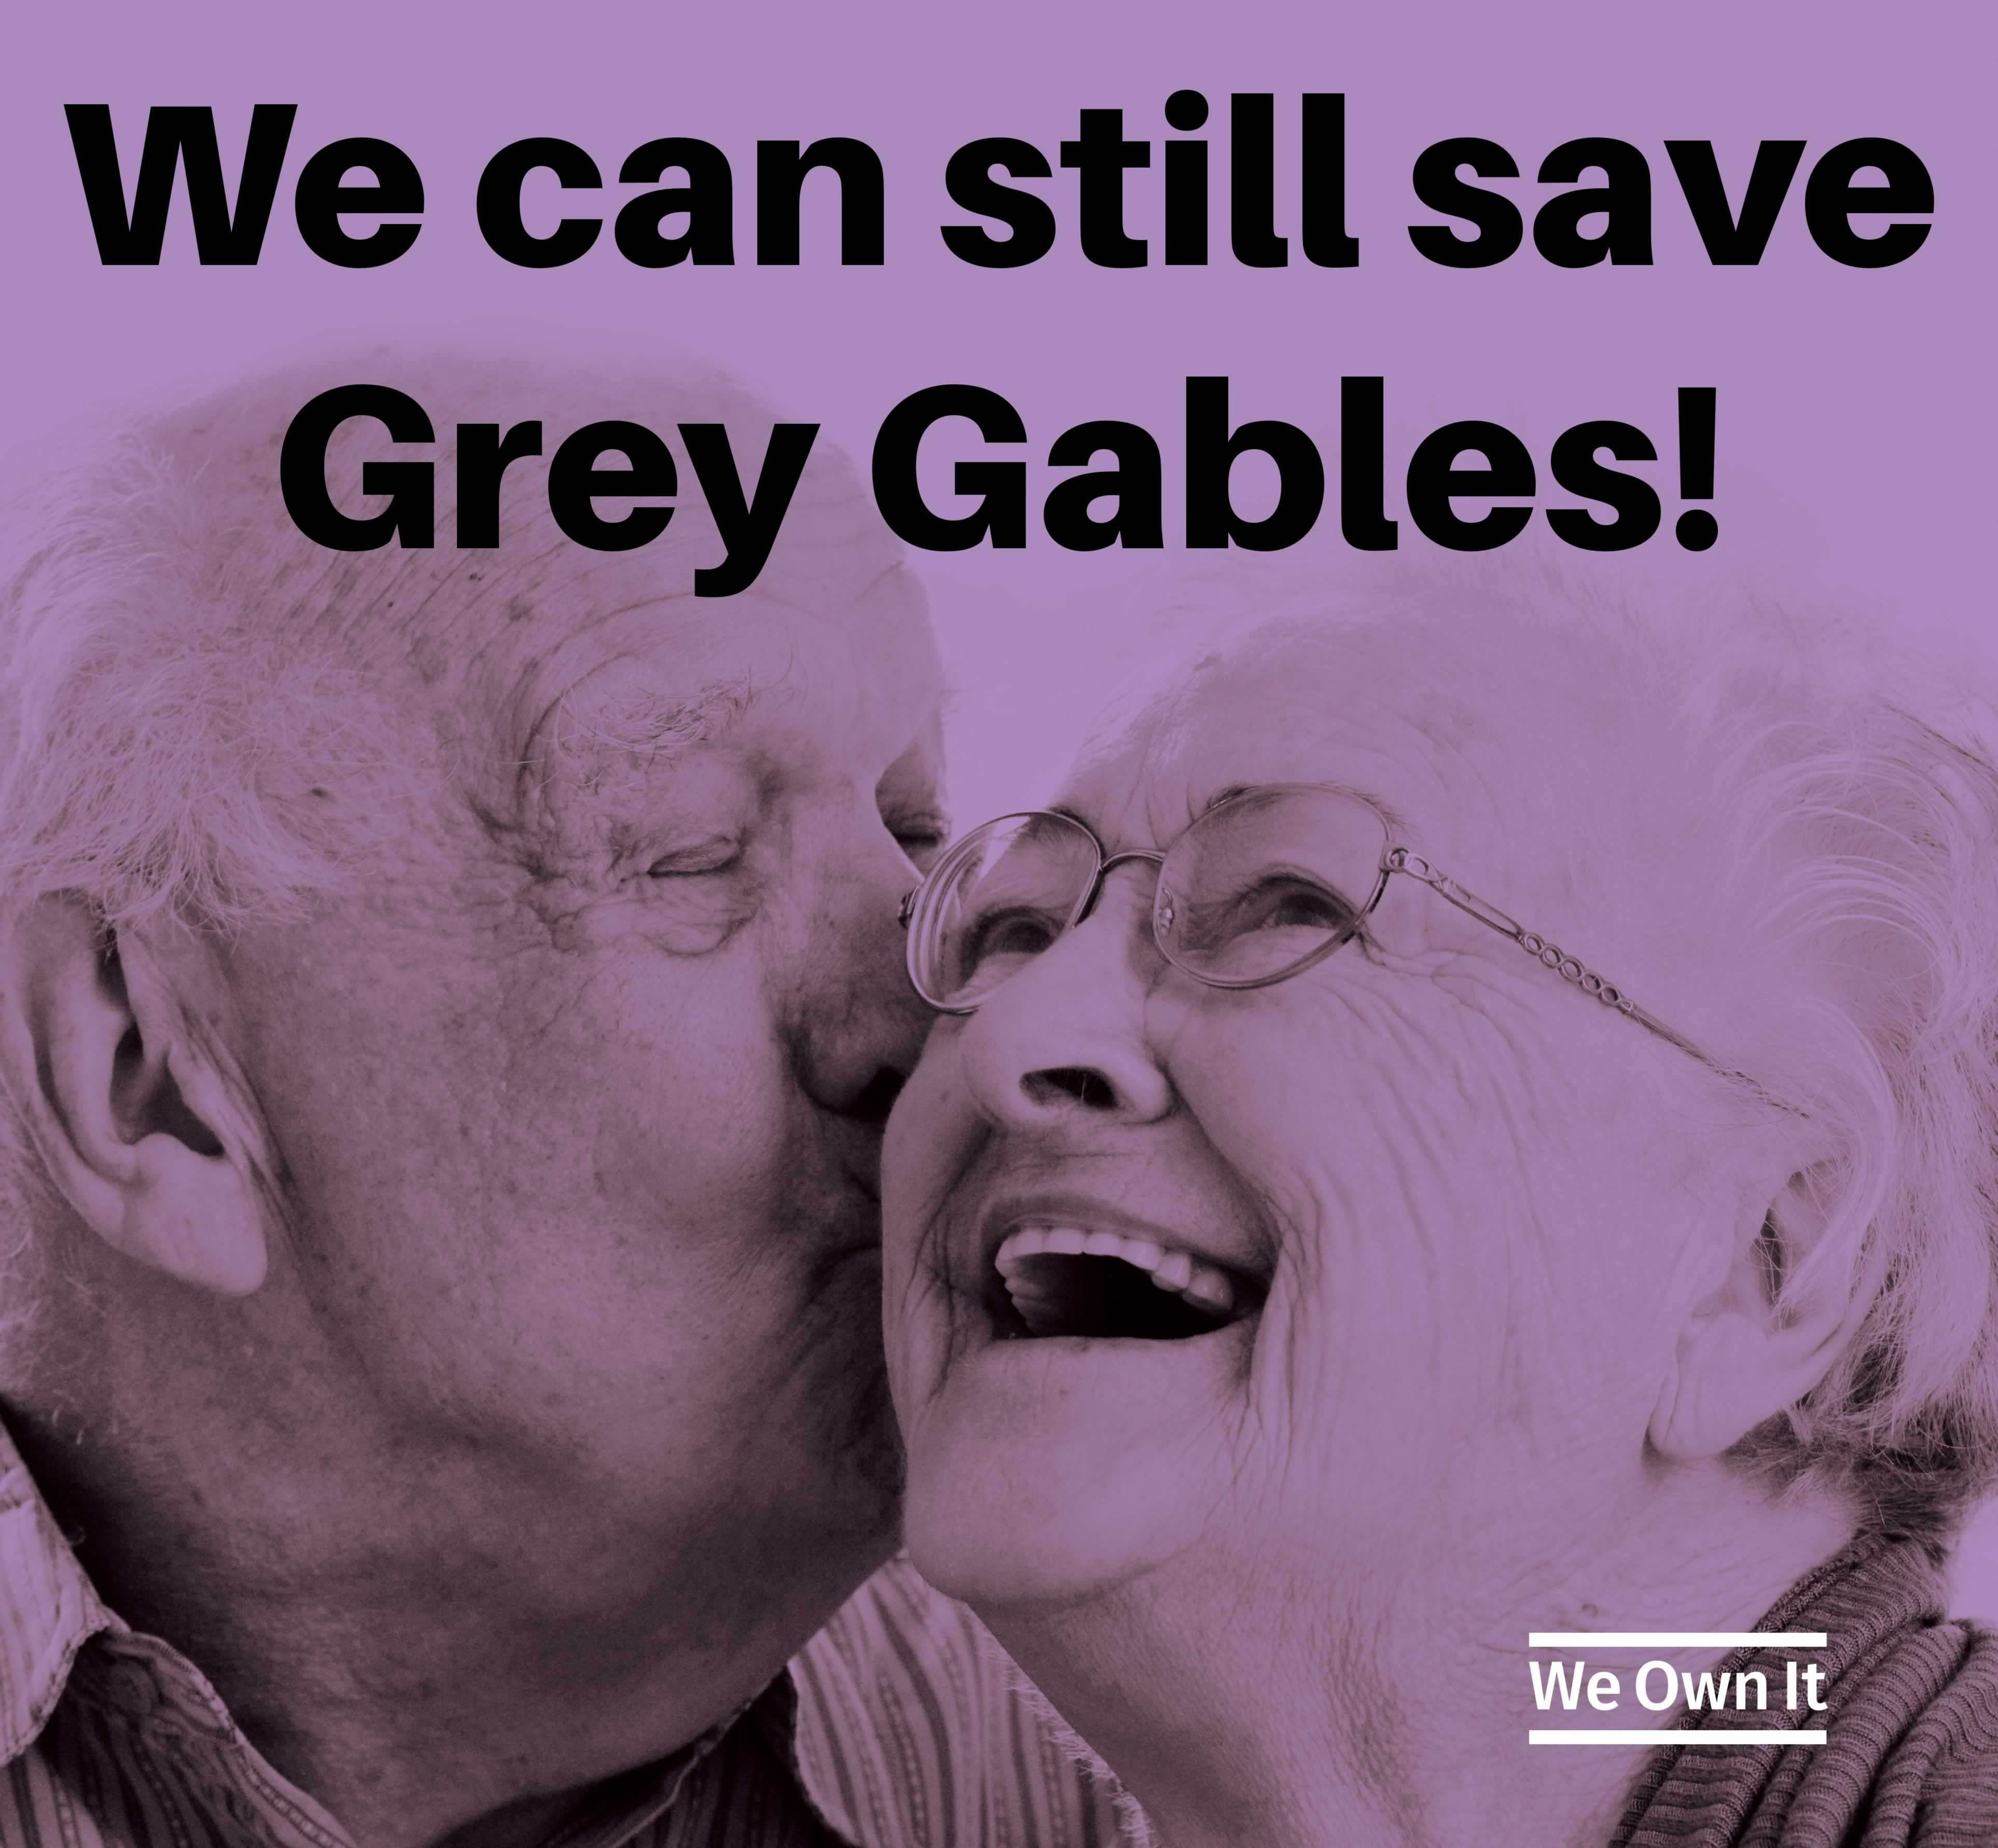 We can still save Grey Gables - We Own It. Two older people smiling